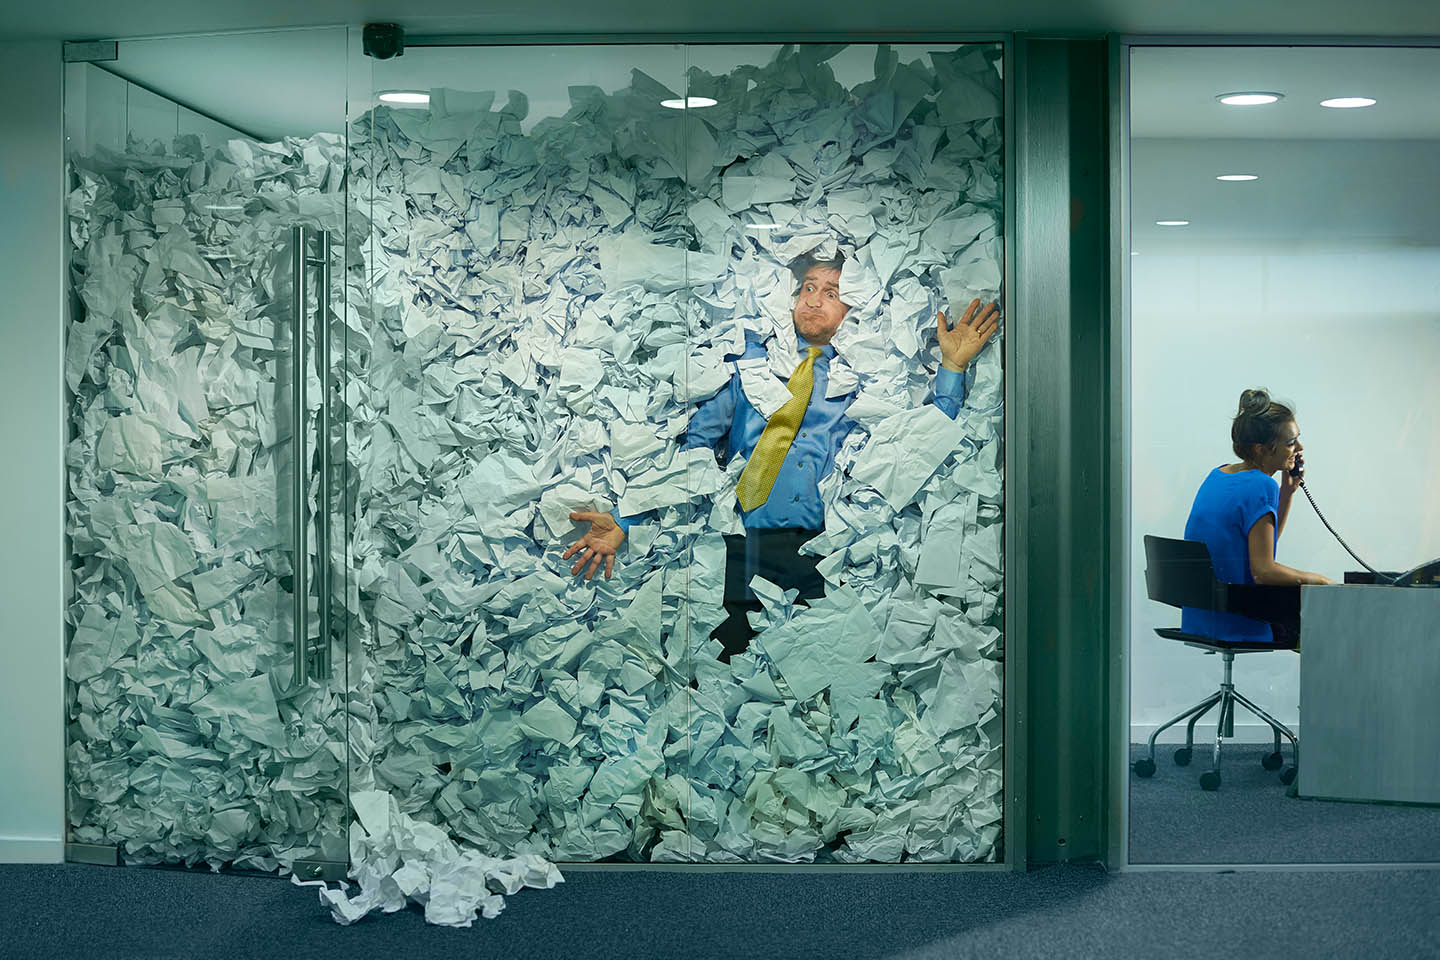 A man squished against a glass wall by a mountain of crumpled paper